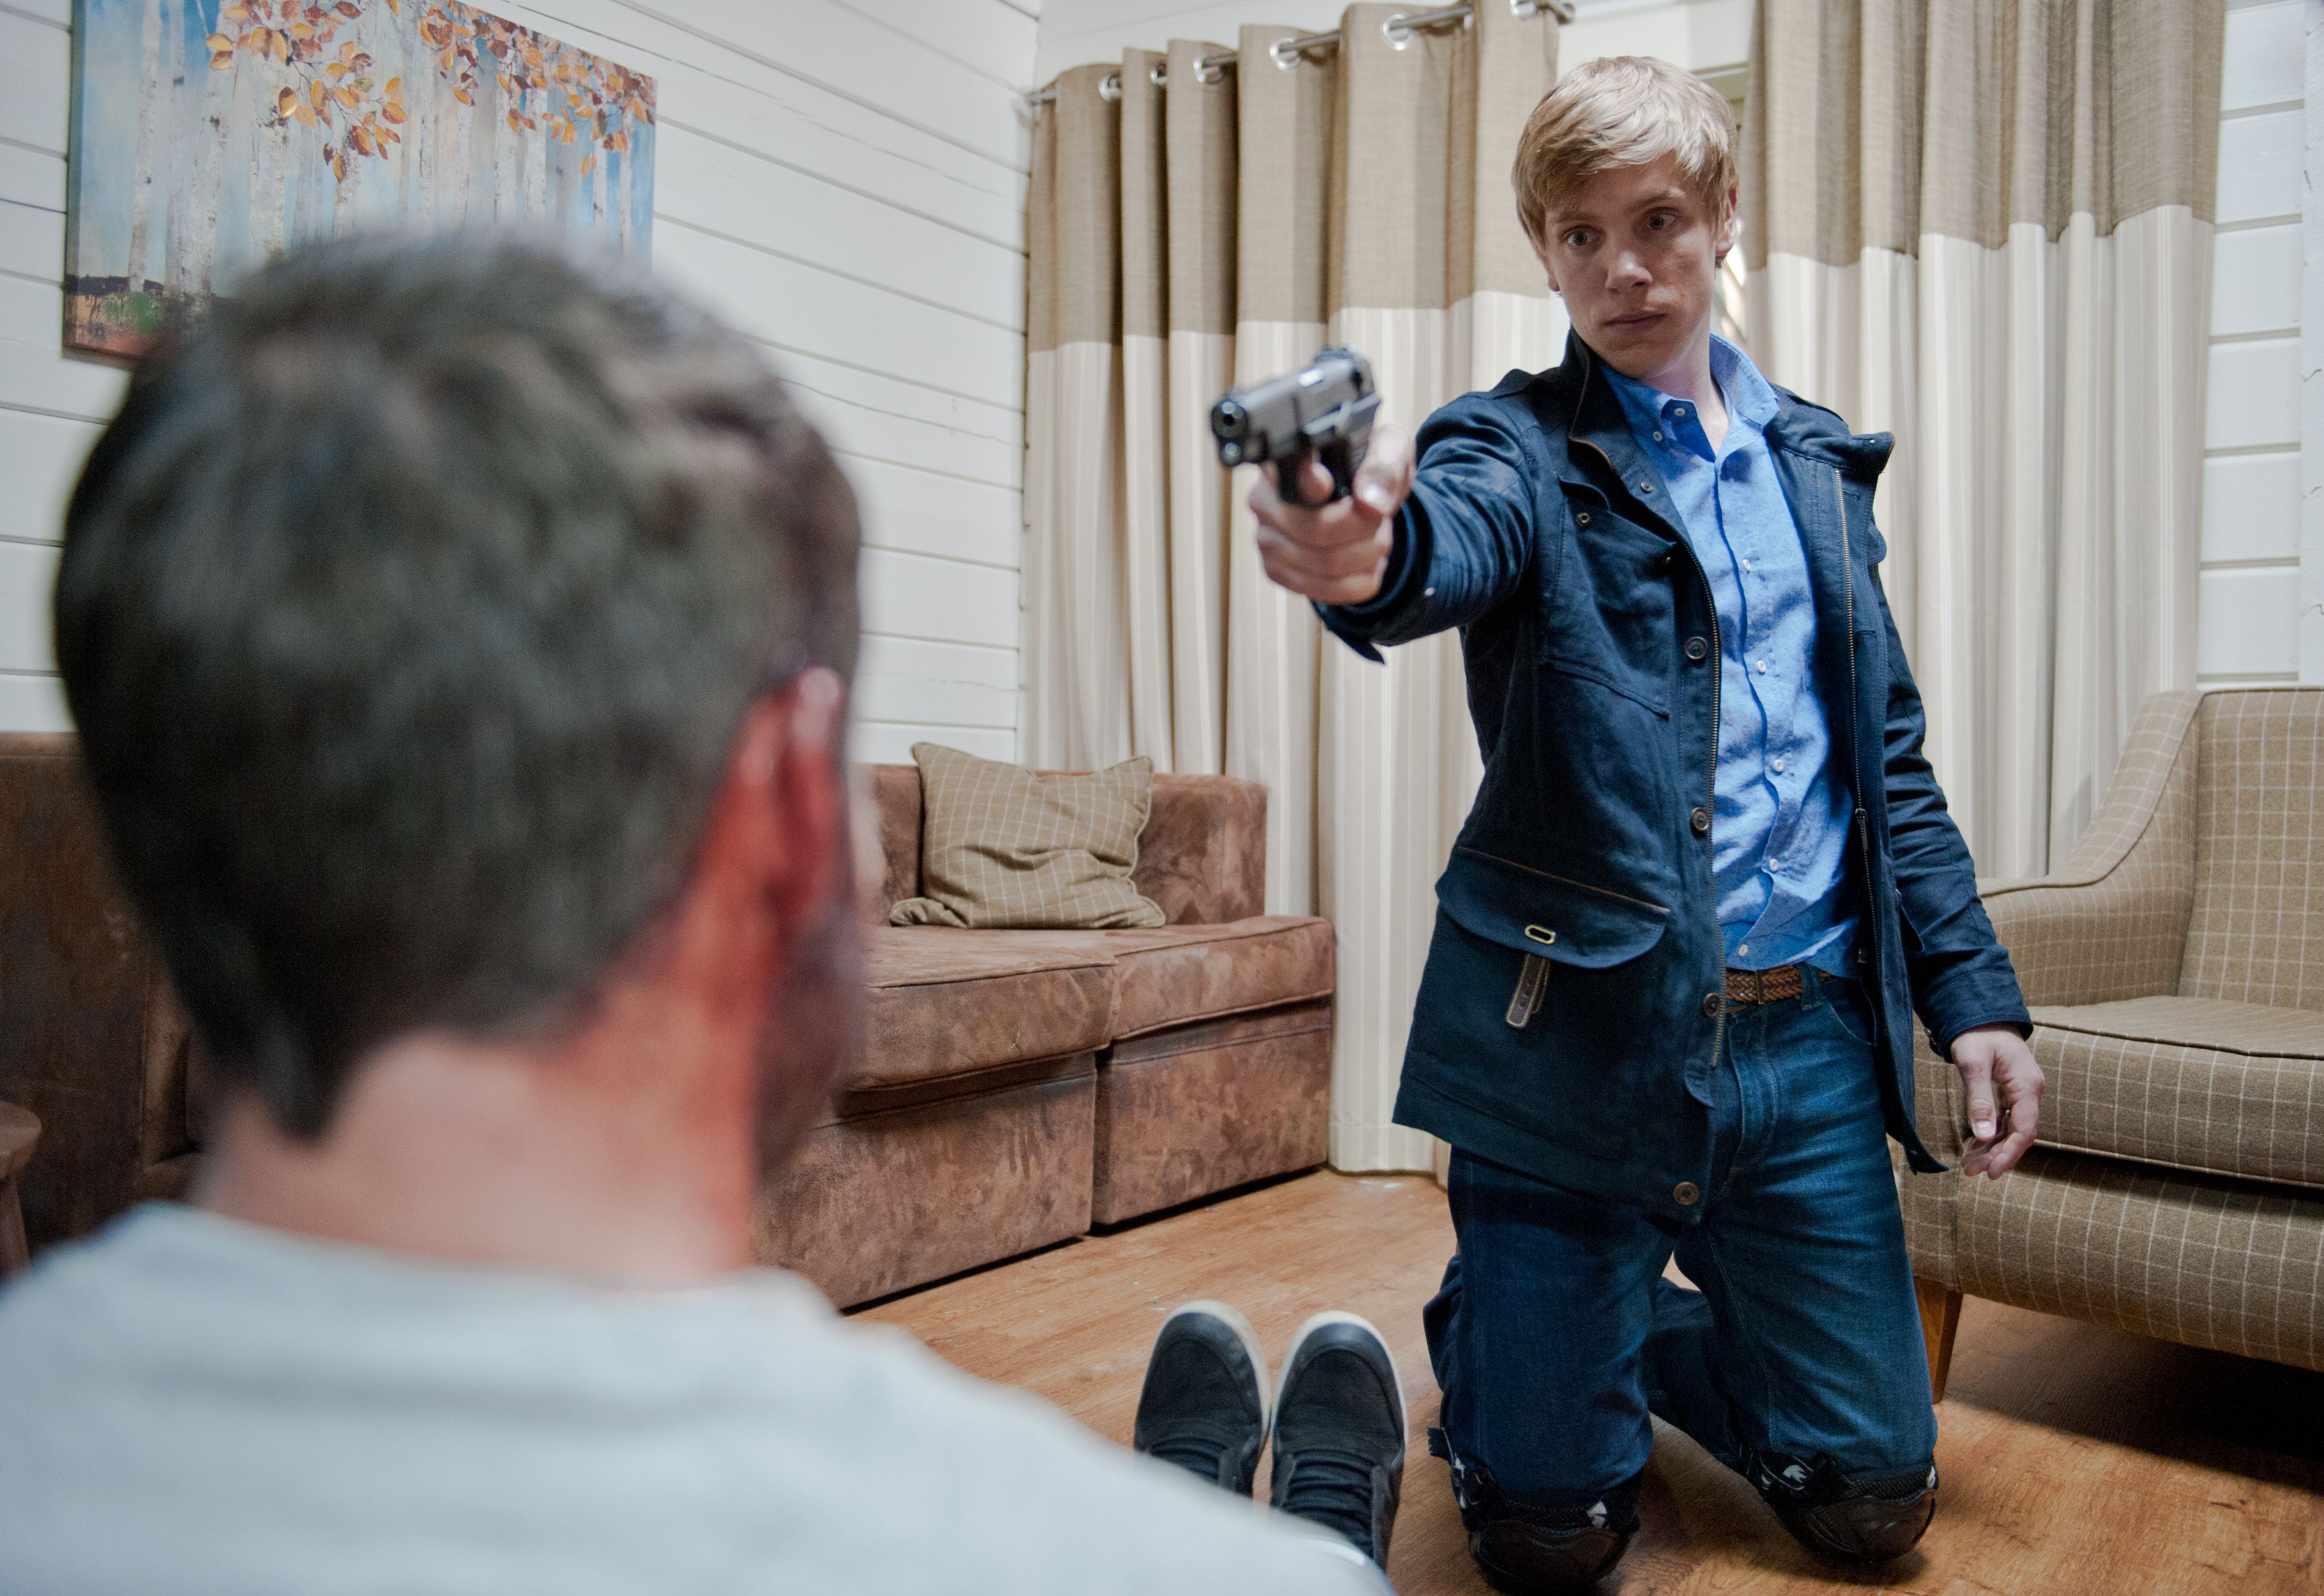 Editorial use only Mandatory Credit: Photo by ITV/REX/Shutterstock (8842199ag) Captured and threatening to expose Robert over Katie's killing, Aaron calls a psychopath. Robert responds by producing a gun. He claims he feels guilt for Andy for ruining his life, but starts to lose control when Aaron begins goading him. Pointing the gun at Aaron, Robert realises he can't bring himself to shoot Aaron. Suddenly, Paddy bursts into the holiday lodge taking Robert by surprise who turns round sharply, firing at Paddy. Paddy collapses to the floor- With Robert Sugden, as played by Ryan Hawley, and Aaron Livesy, as played by Danny Miller. (Ep 7242 - 23rd July 2015). 'Emmerdale' TV Series - Jul 2015 Emmerdale Farm is a long-running British soap opera set in Emmerdale, a fictional village in the Yorkshire Dales. Created by Kevin Laffan, it first broadcast on 16 October 1972 and produced by ITV Yorkshire.